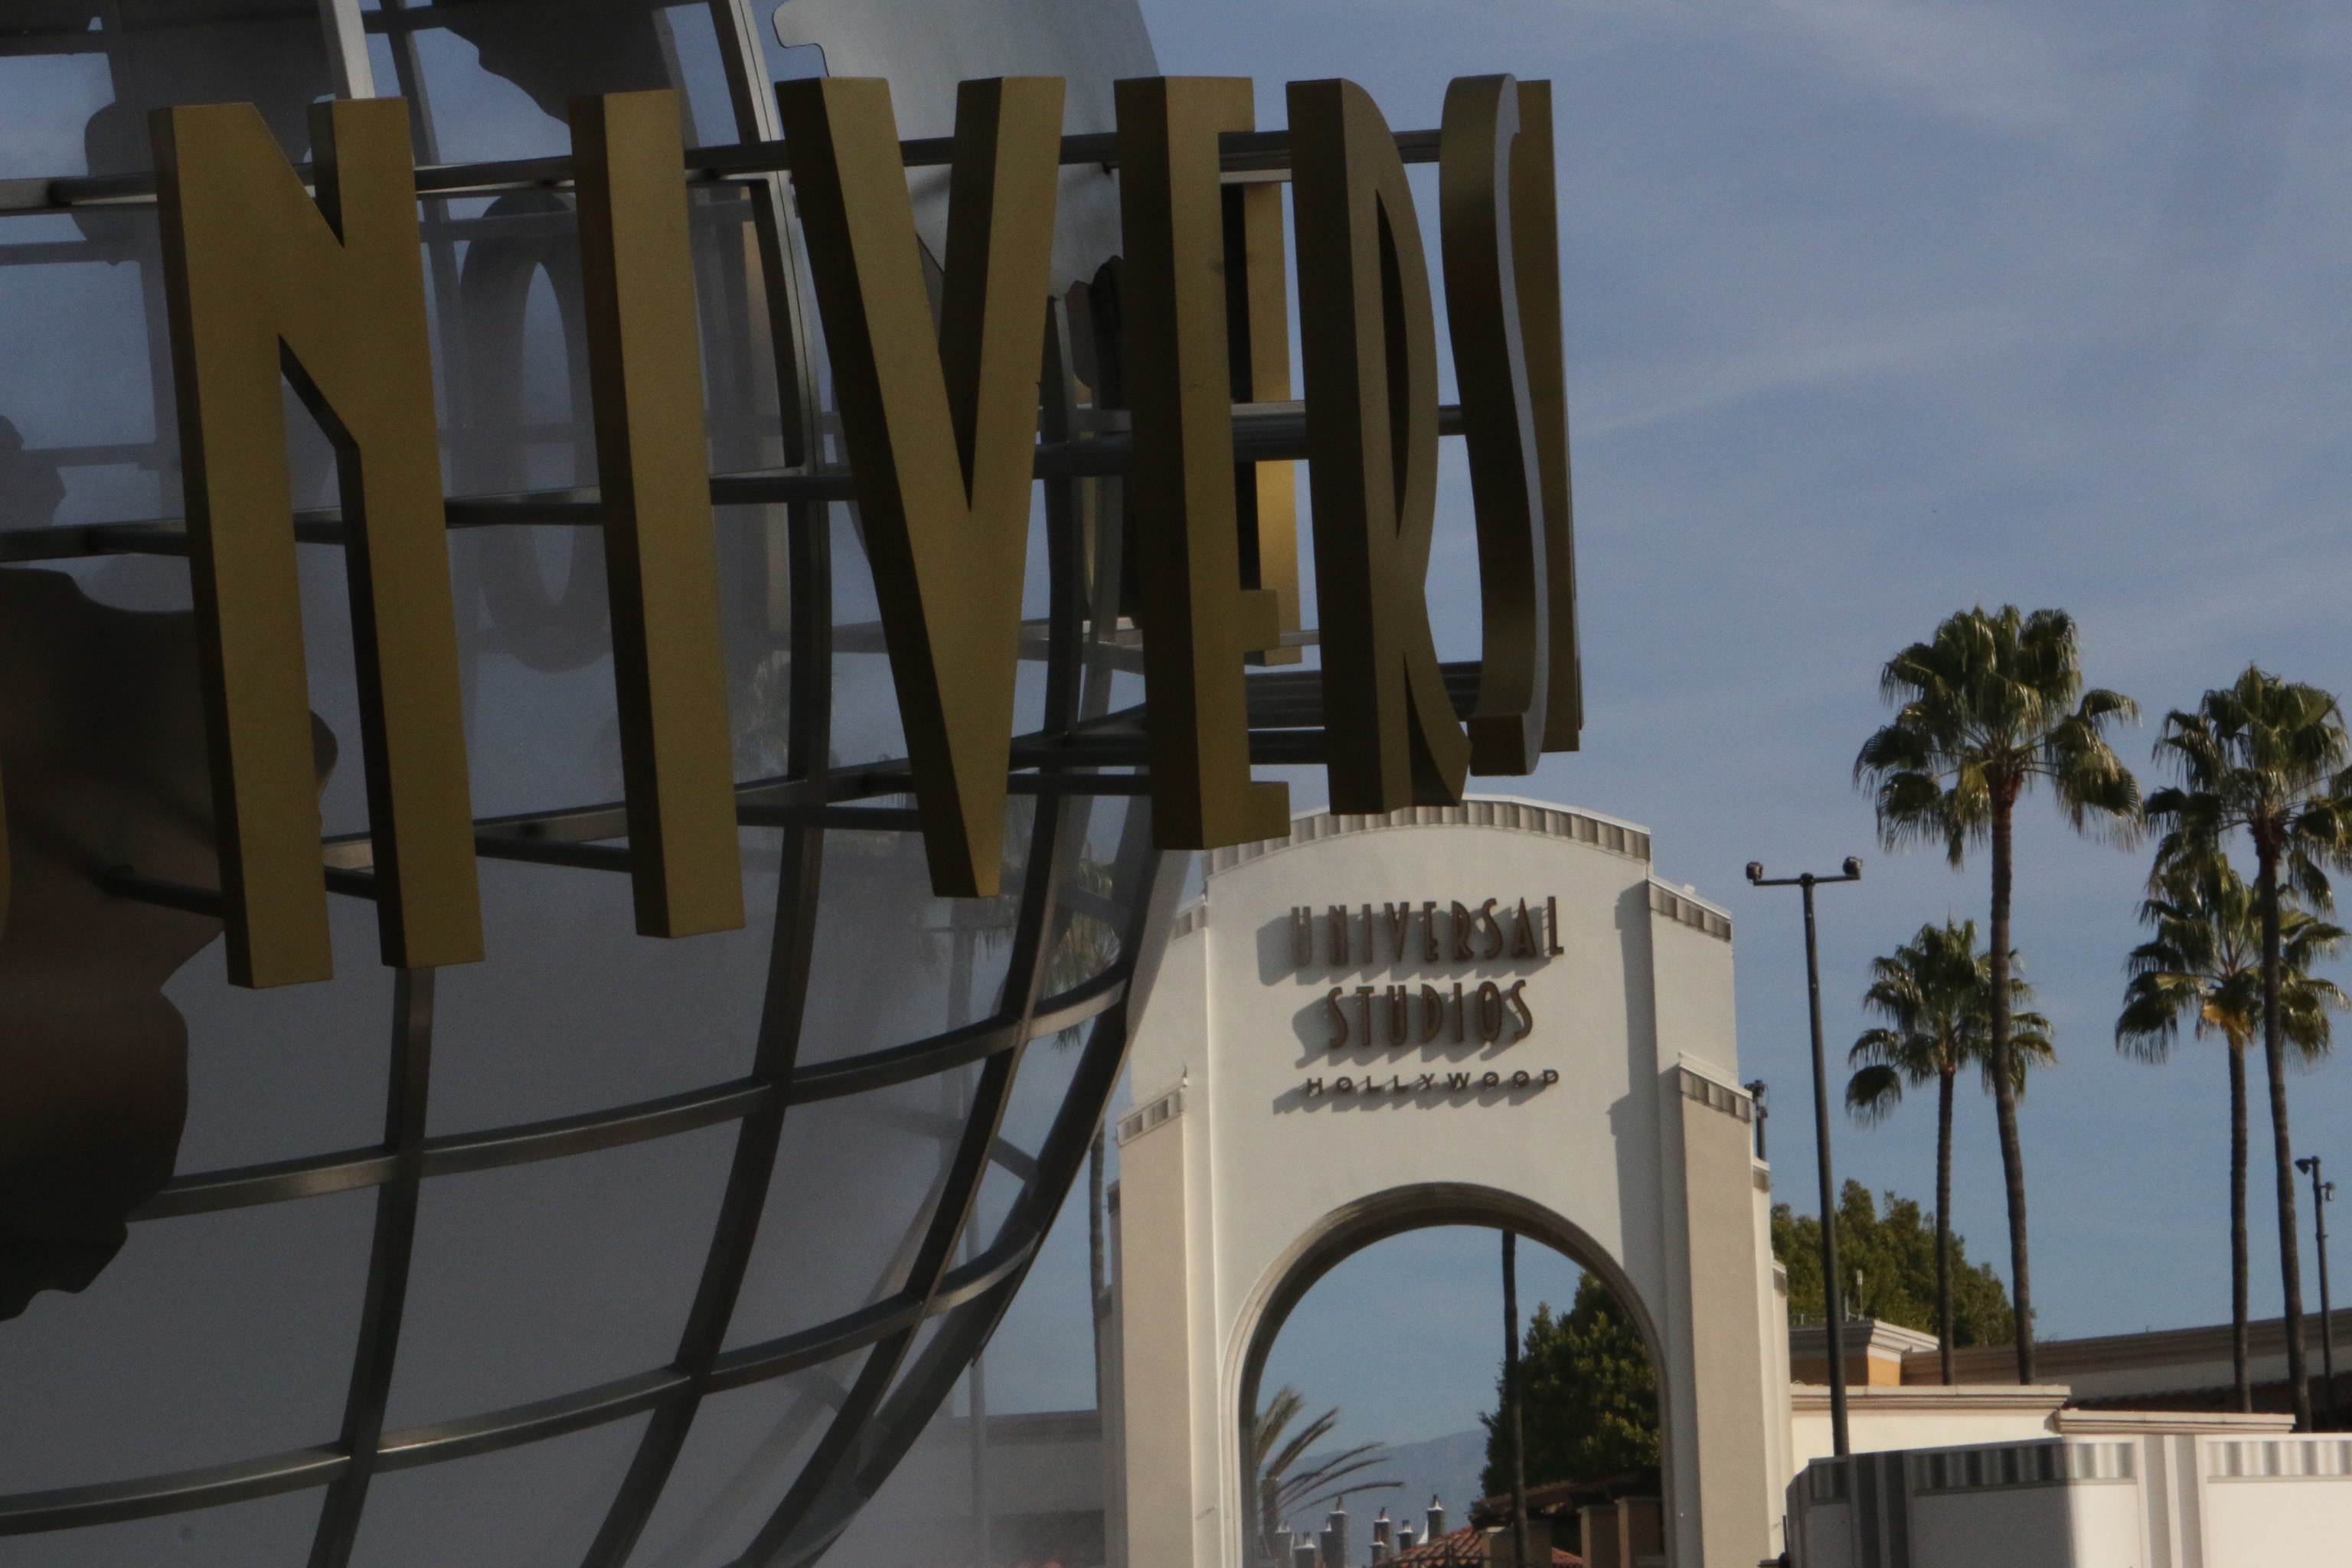 Universal raises ticket prices and introduces new premium annual pass